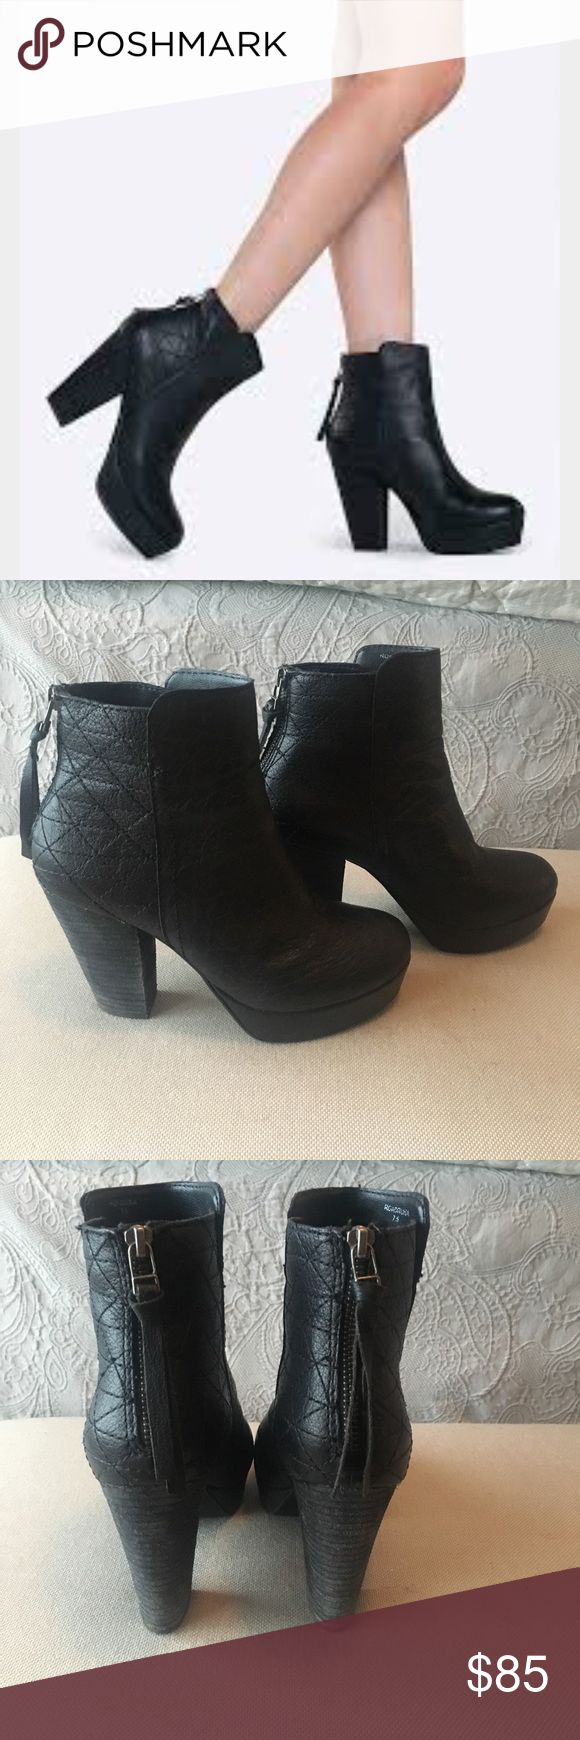 """Steve Madden- Roadruna Booties in Black size 7.5 -CONDITION: EUC! -Stay a step ahead in Steve Madden's trend-leading styles and easy-to-wear silhouettes. Inspired by rock 'n' roll and fused with a jolt of urban edge, Madden creates products that are innovative, sometimes wild and always spot-on-chic. * 3 1/2"""" heel; 1"""" platform * 6 1/2"""" shaft. * Back zip closure. * Leather upper/textile and synthetic lining/rubber sole. -Questions and REASONABLE offers are welcome  -Pet friendly home but…"""